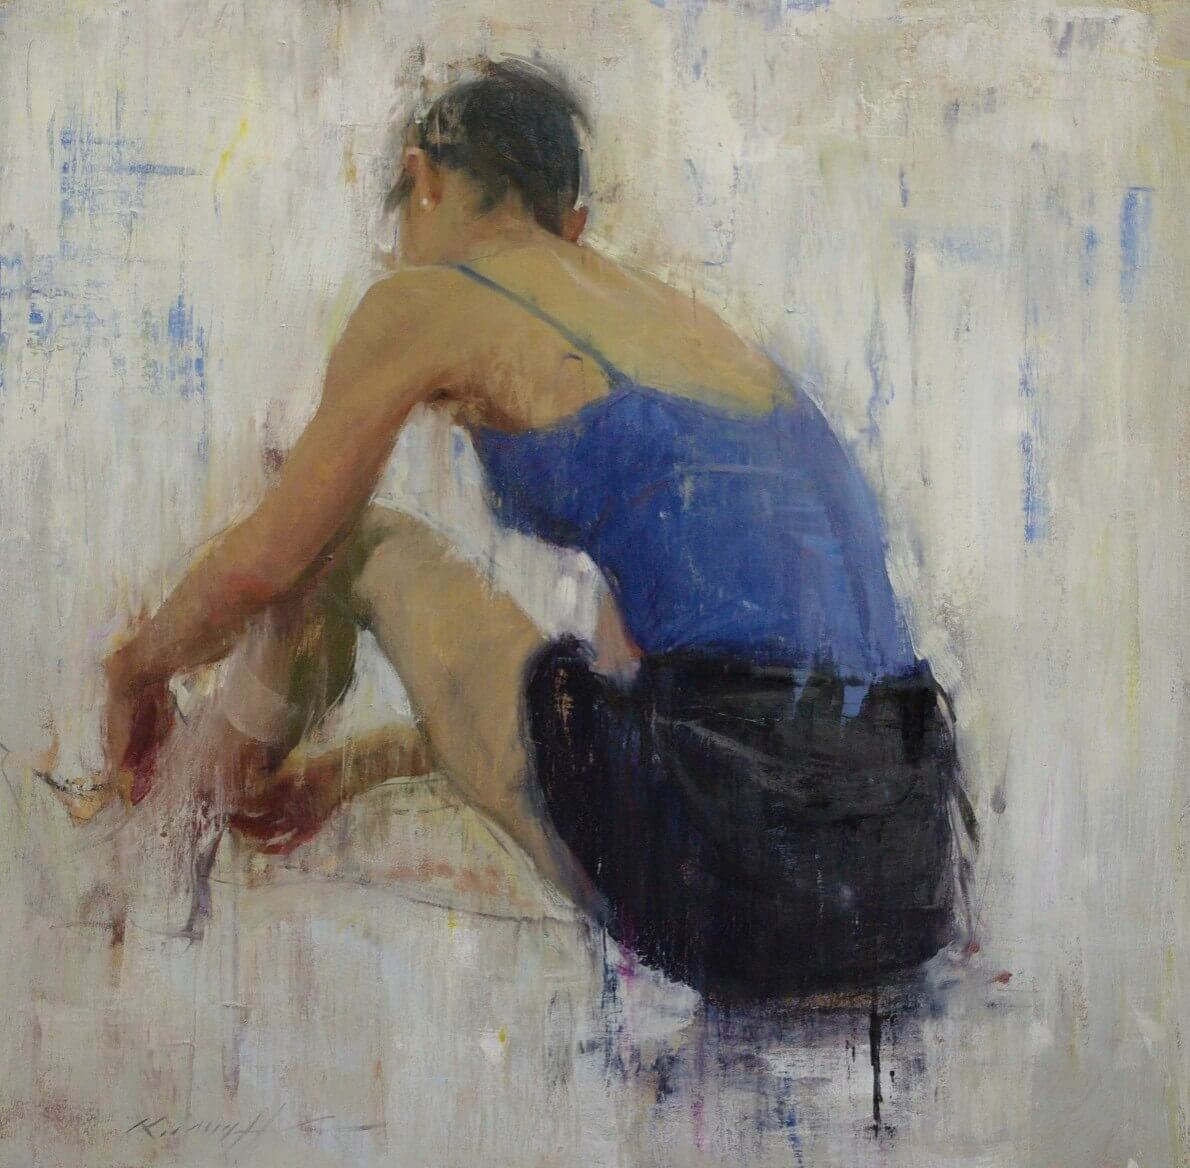 Dancer, Quang Ho